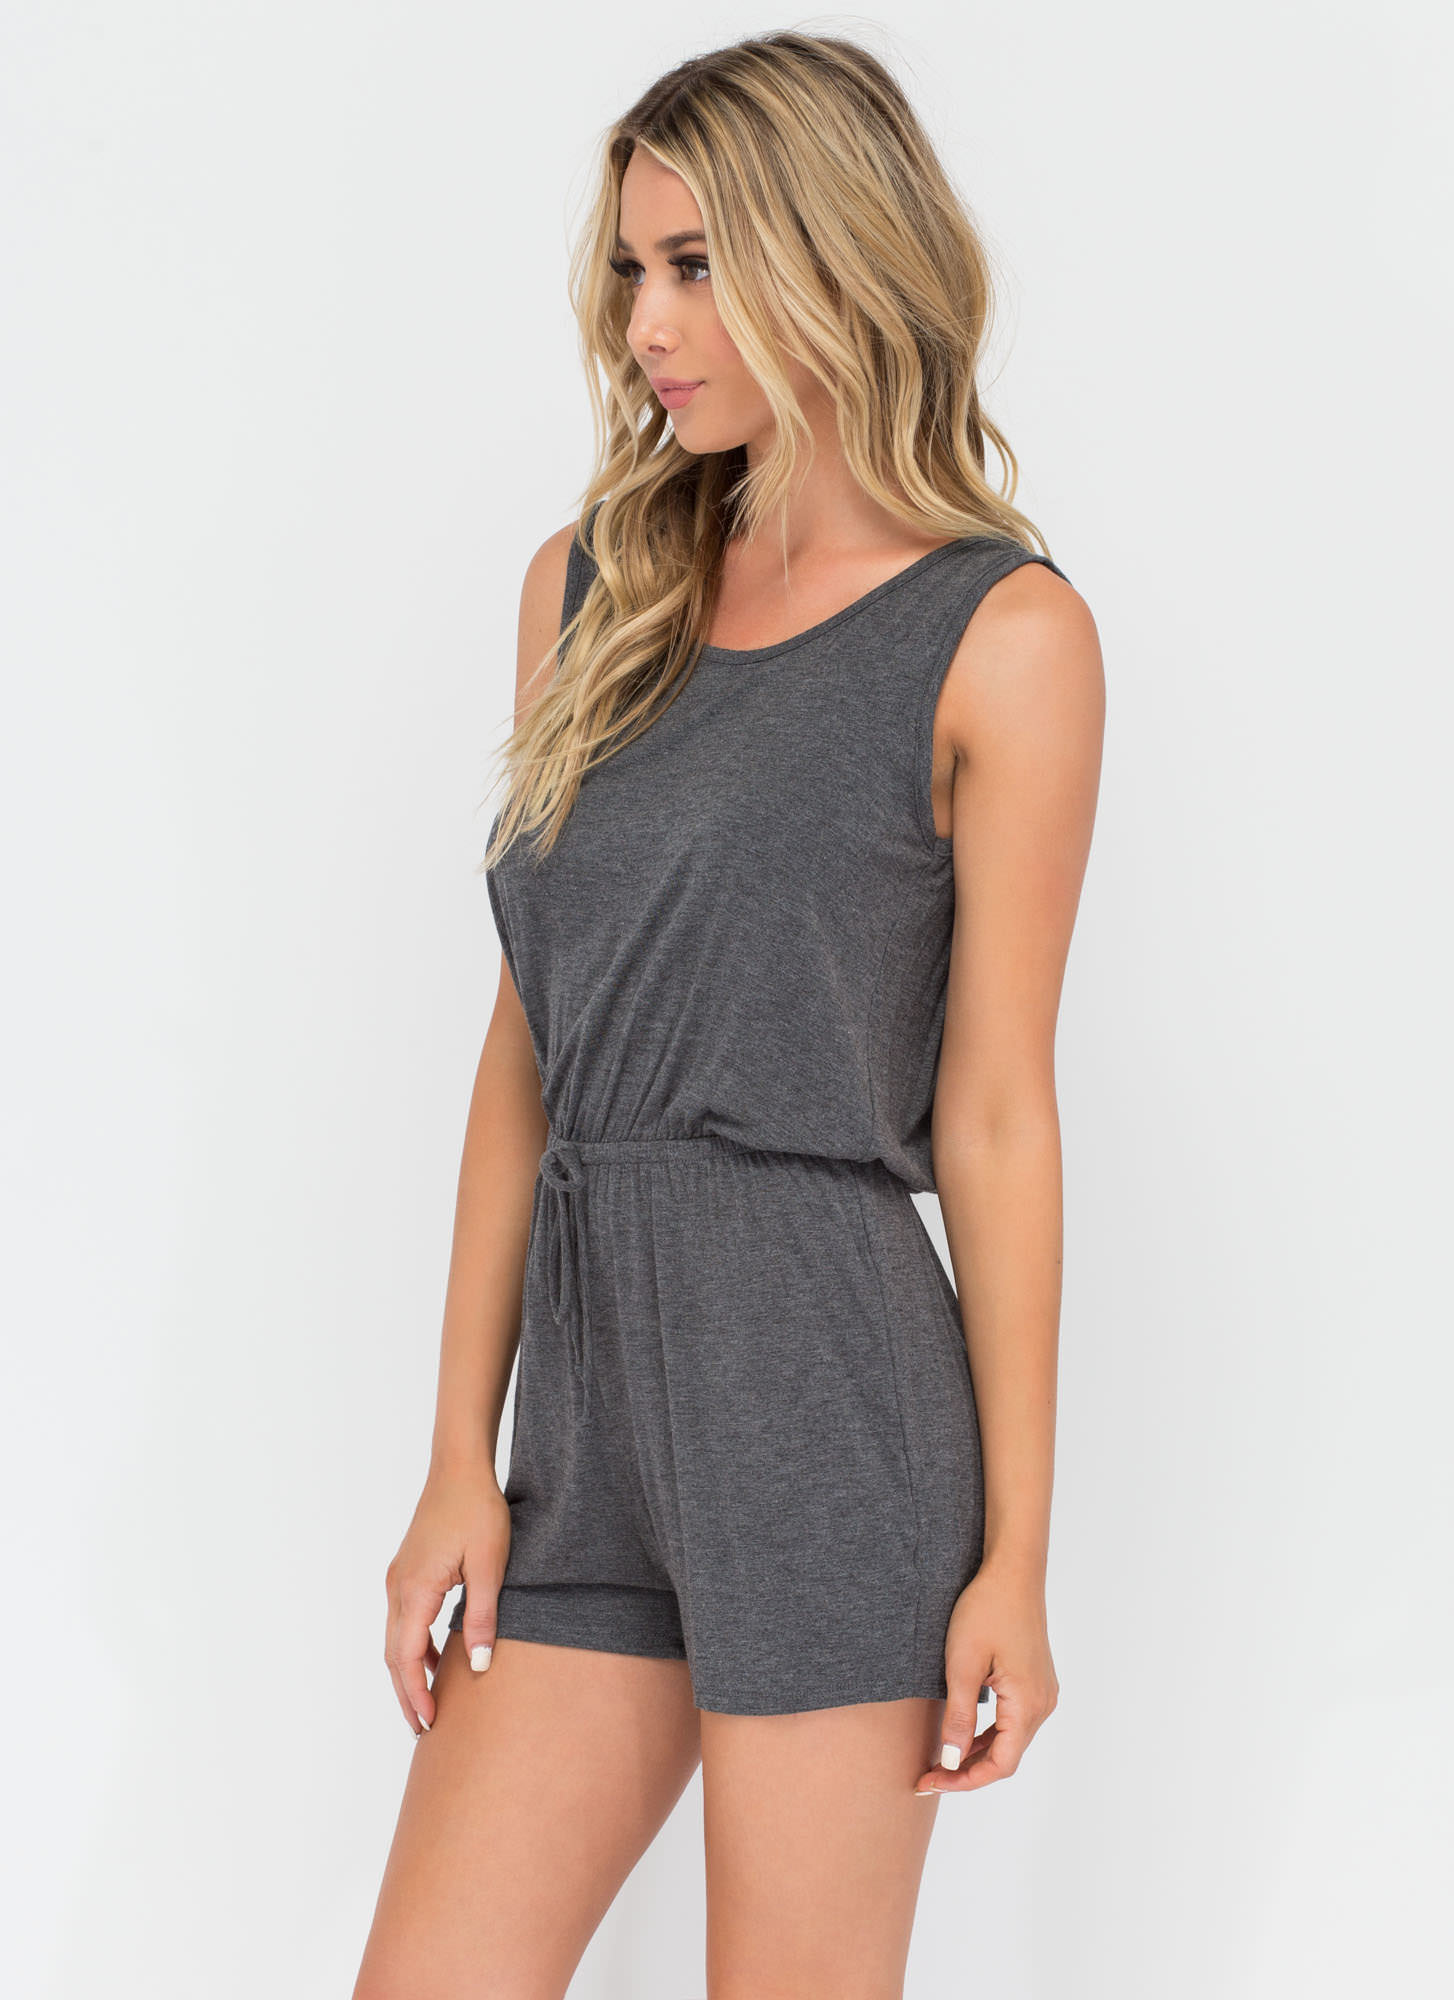 Easy Going Knit Romper CHARCOAL (Final Sale)